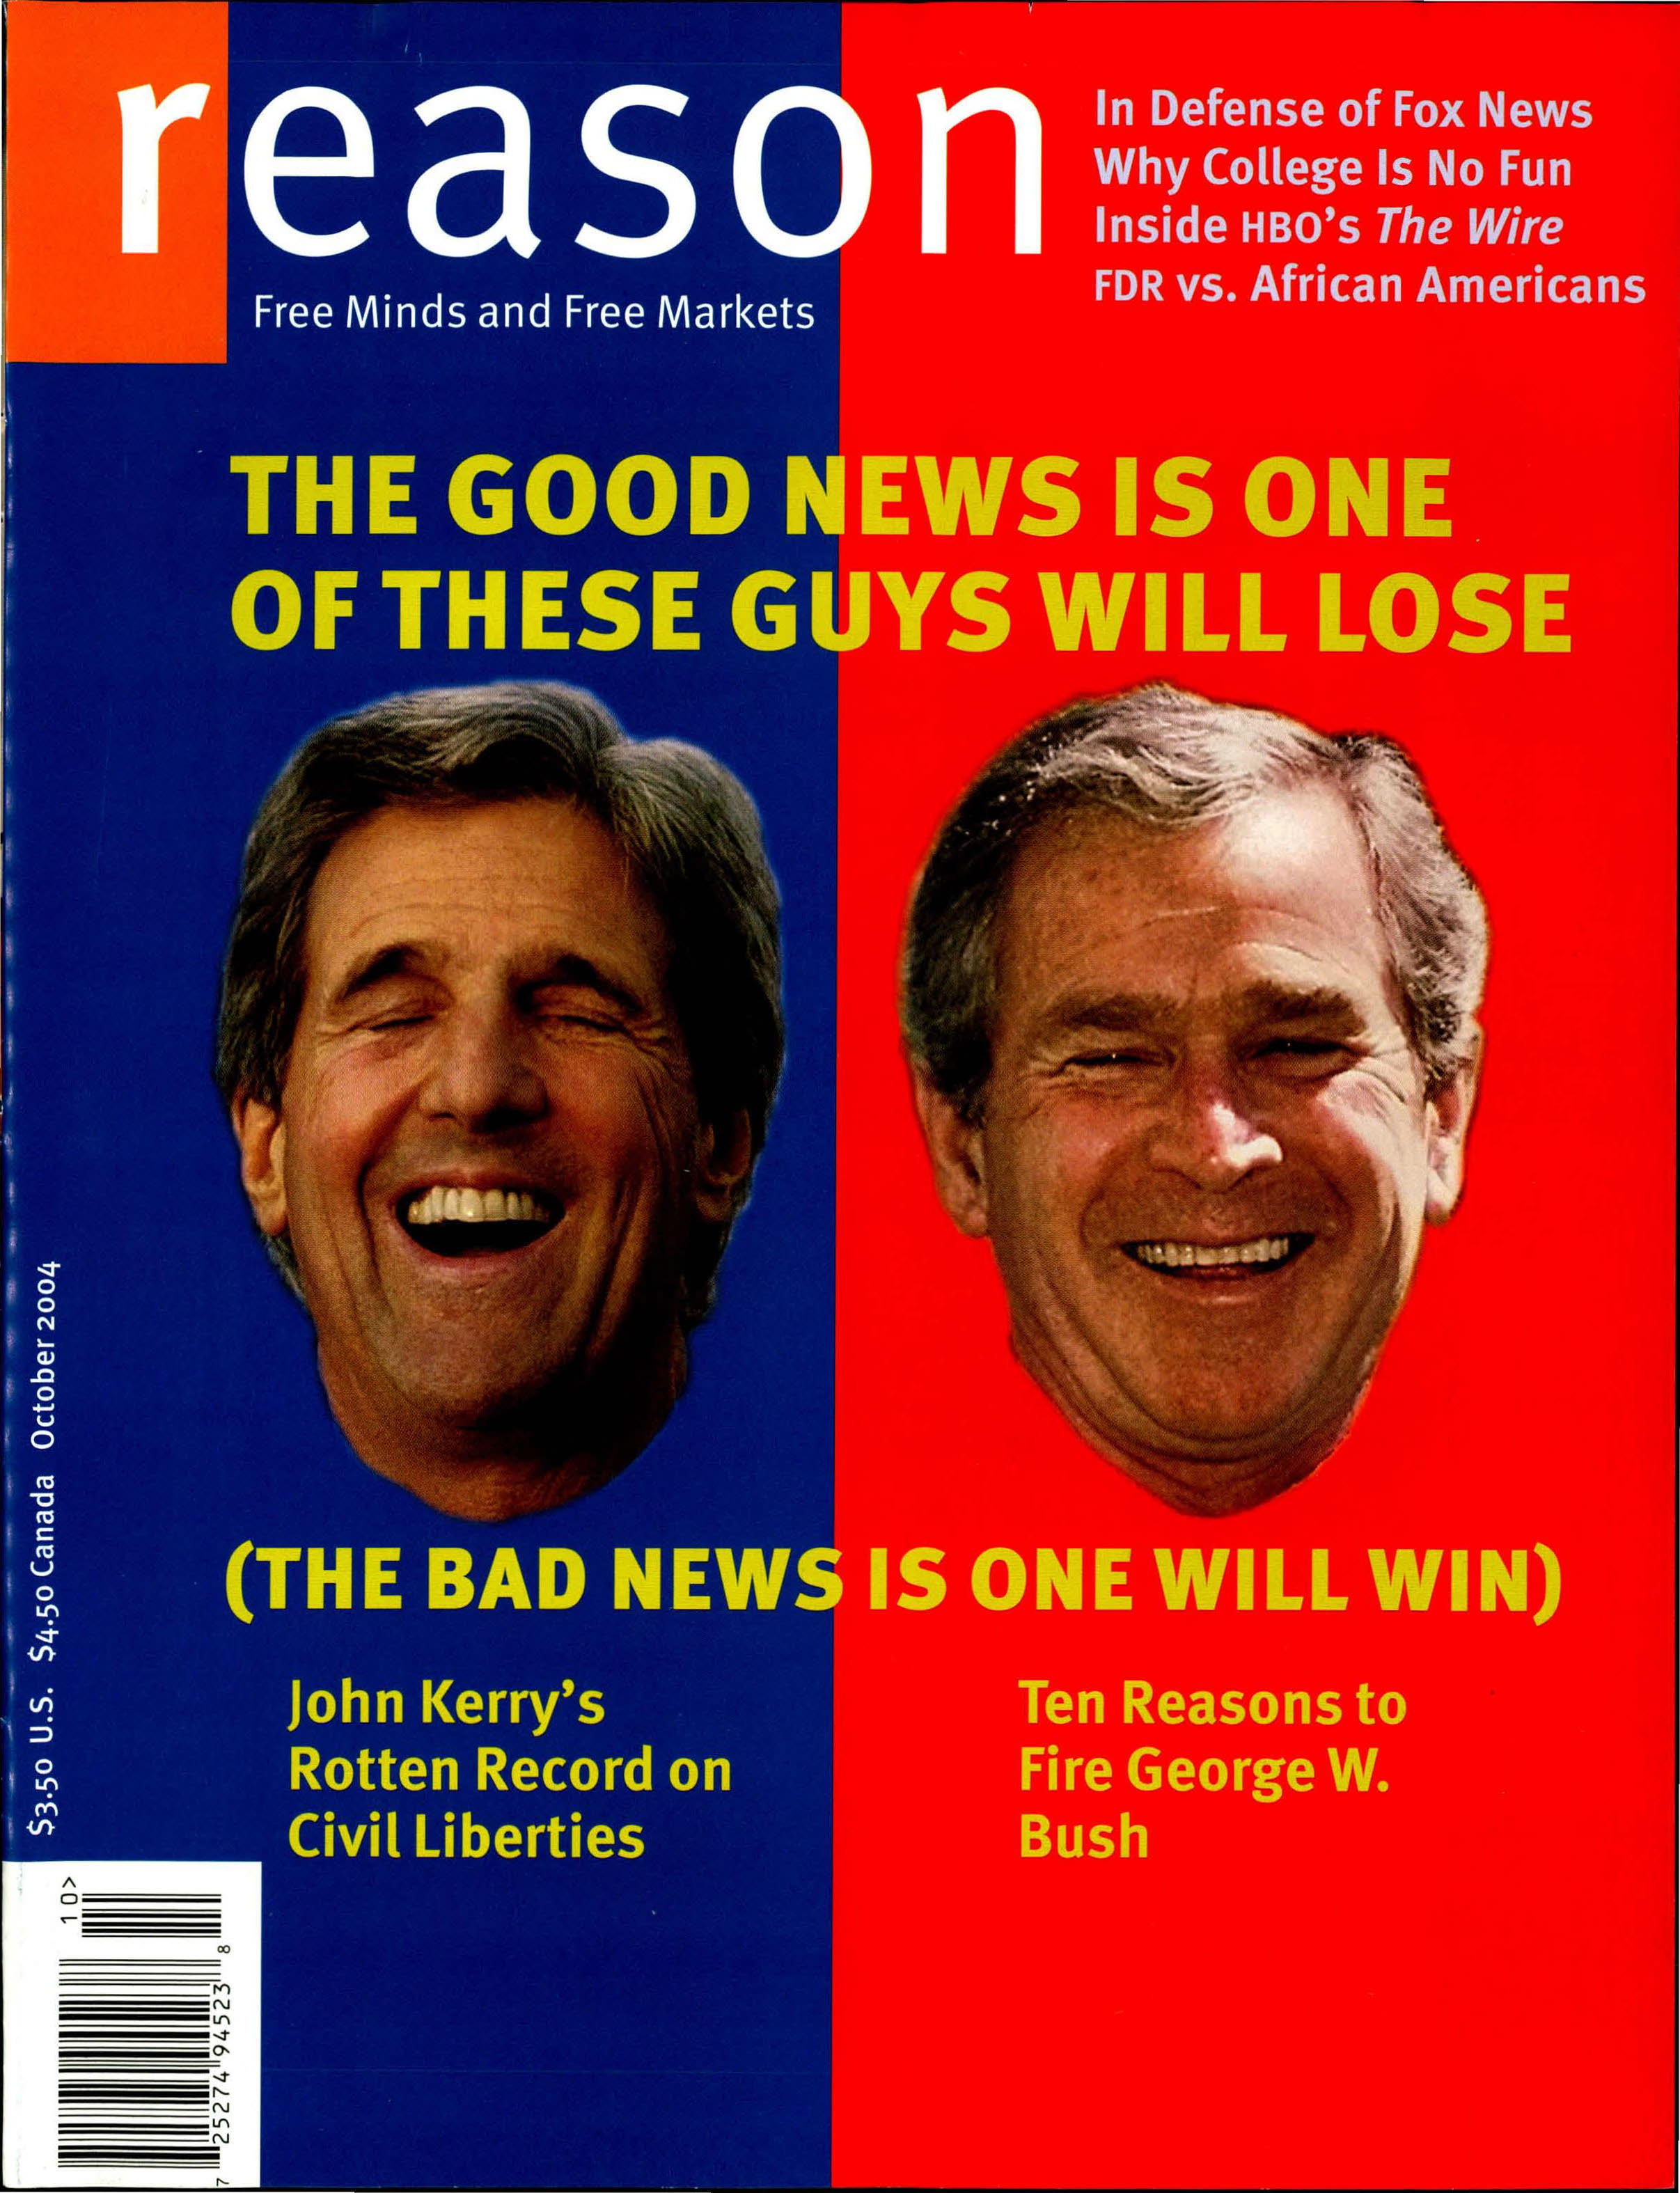 Reason Magazine, October 2004 cover image